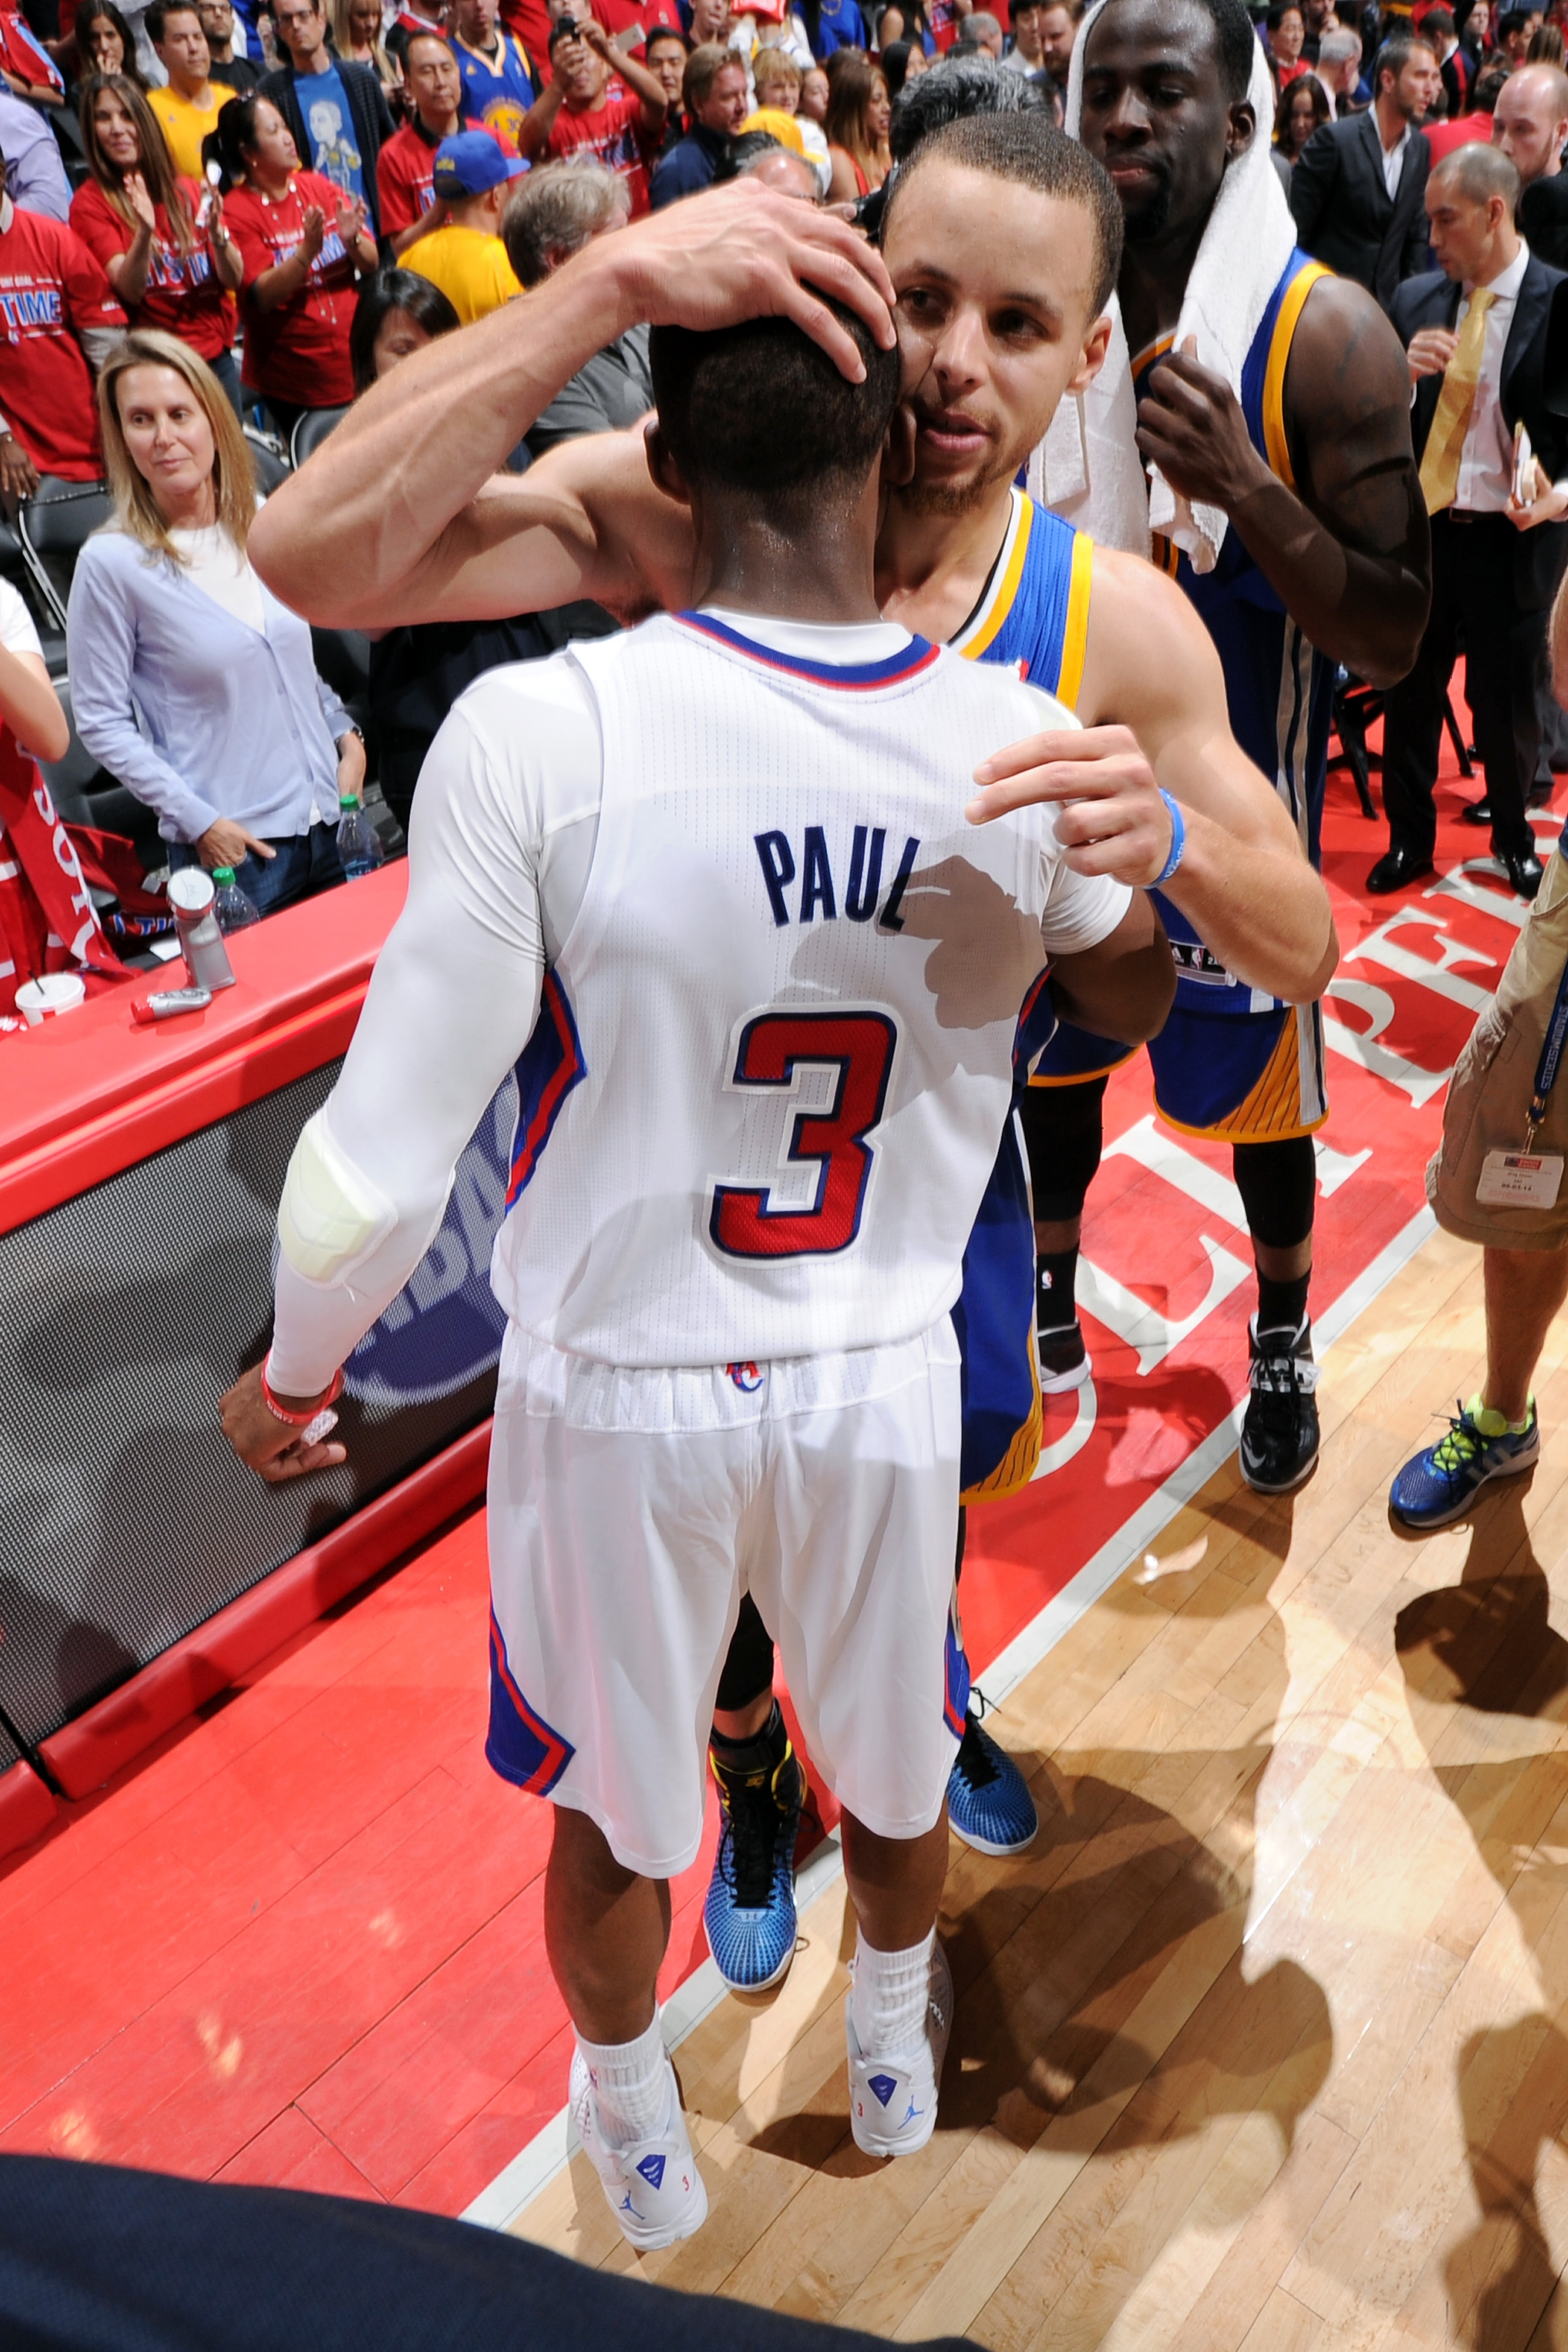 La clippers the impact of blake griffins surgery on the team foxsports com - La Clippers The Impact Of Blake Griffins Surgery On The Team Foxsports Com Ralph S